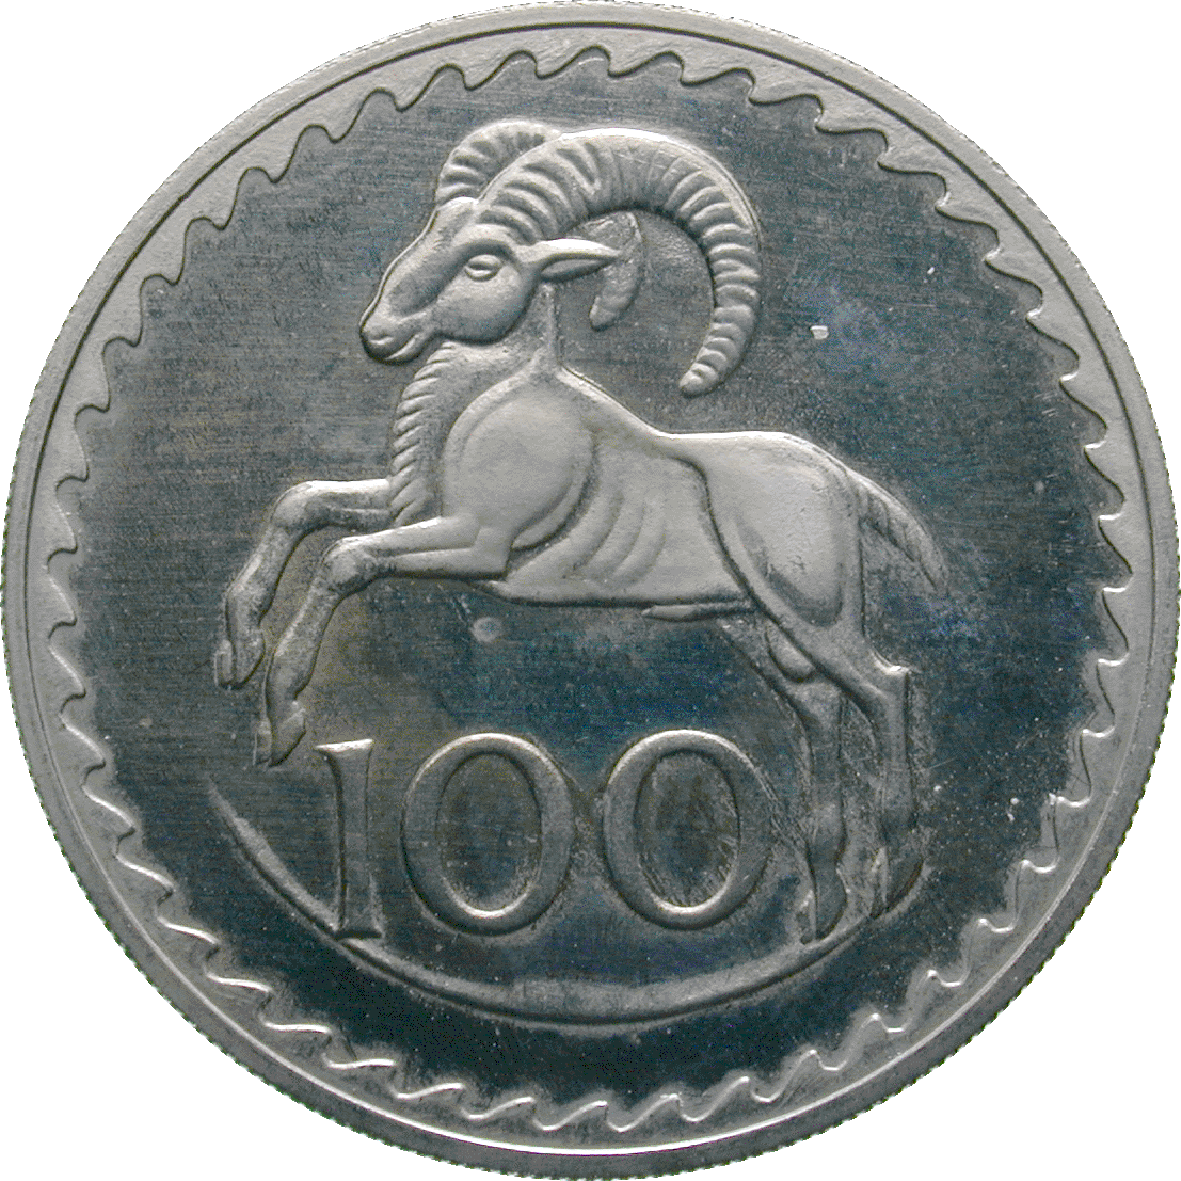 Republic of Cyprus, 100 Mils 1963 (reverse)